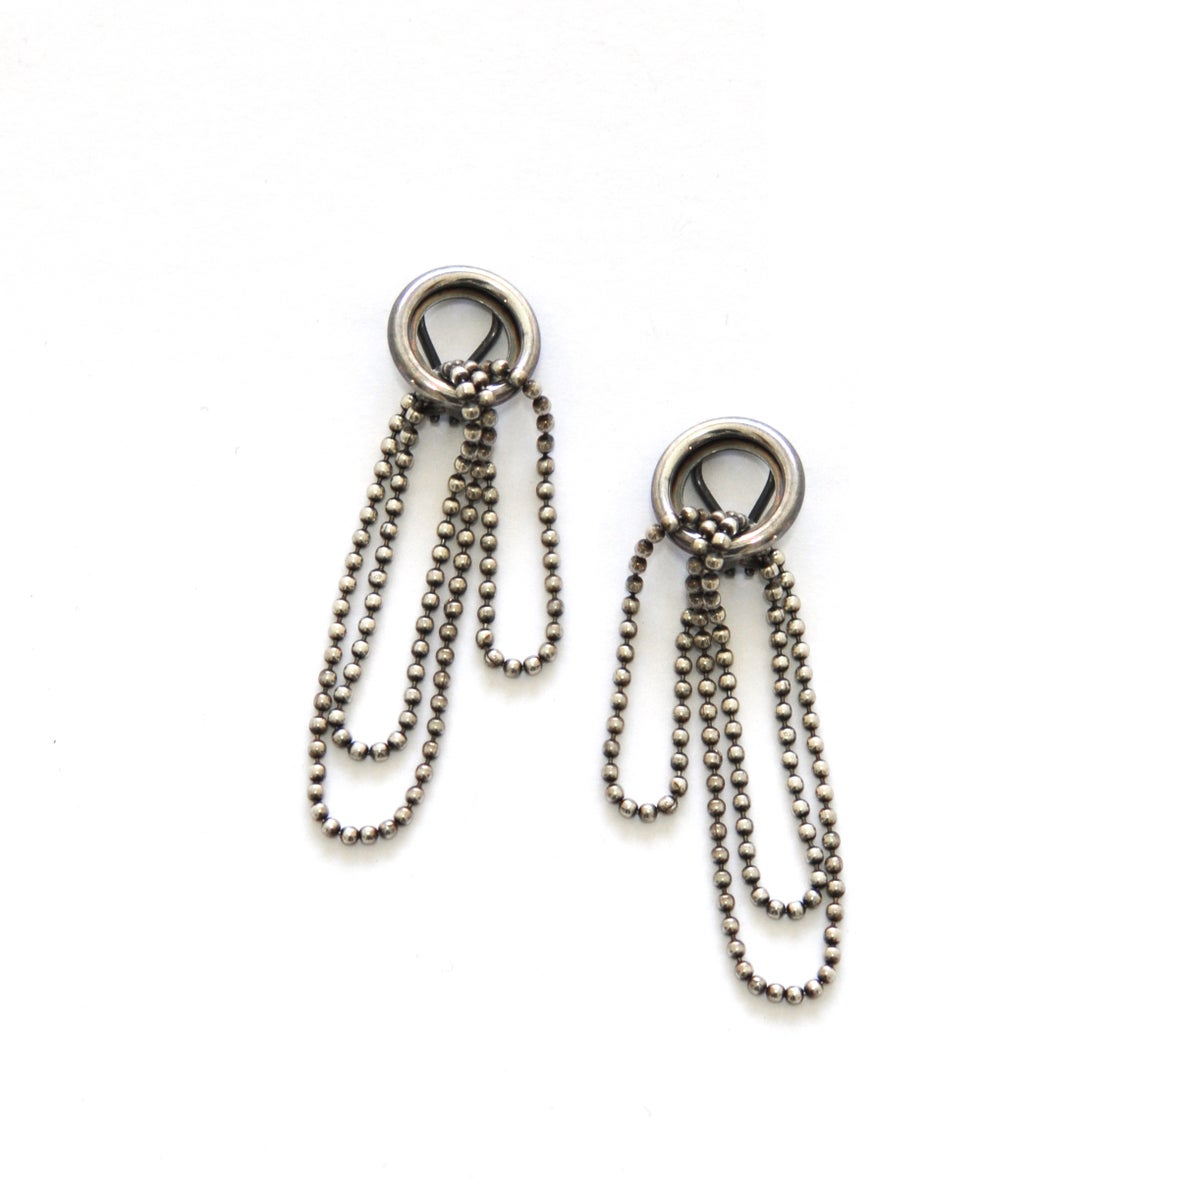 Image of SIMPLE SILVER clip earrings